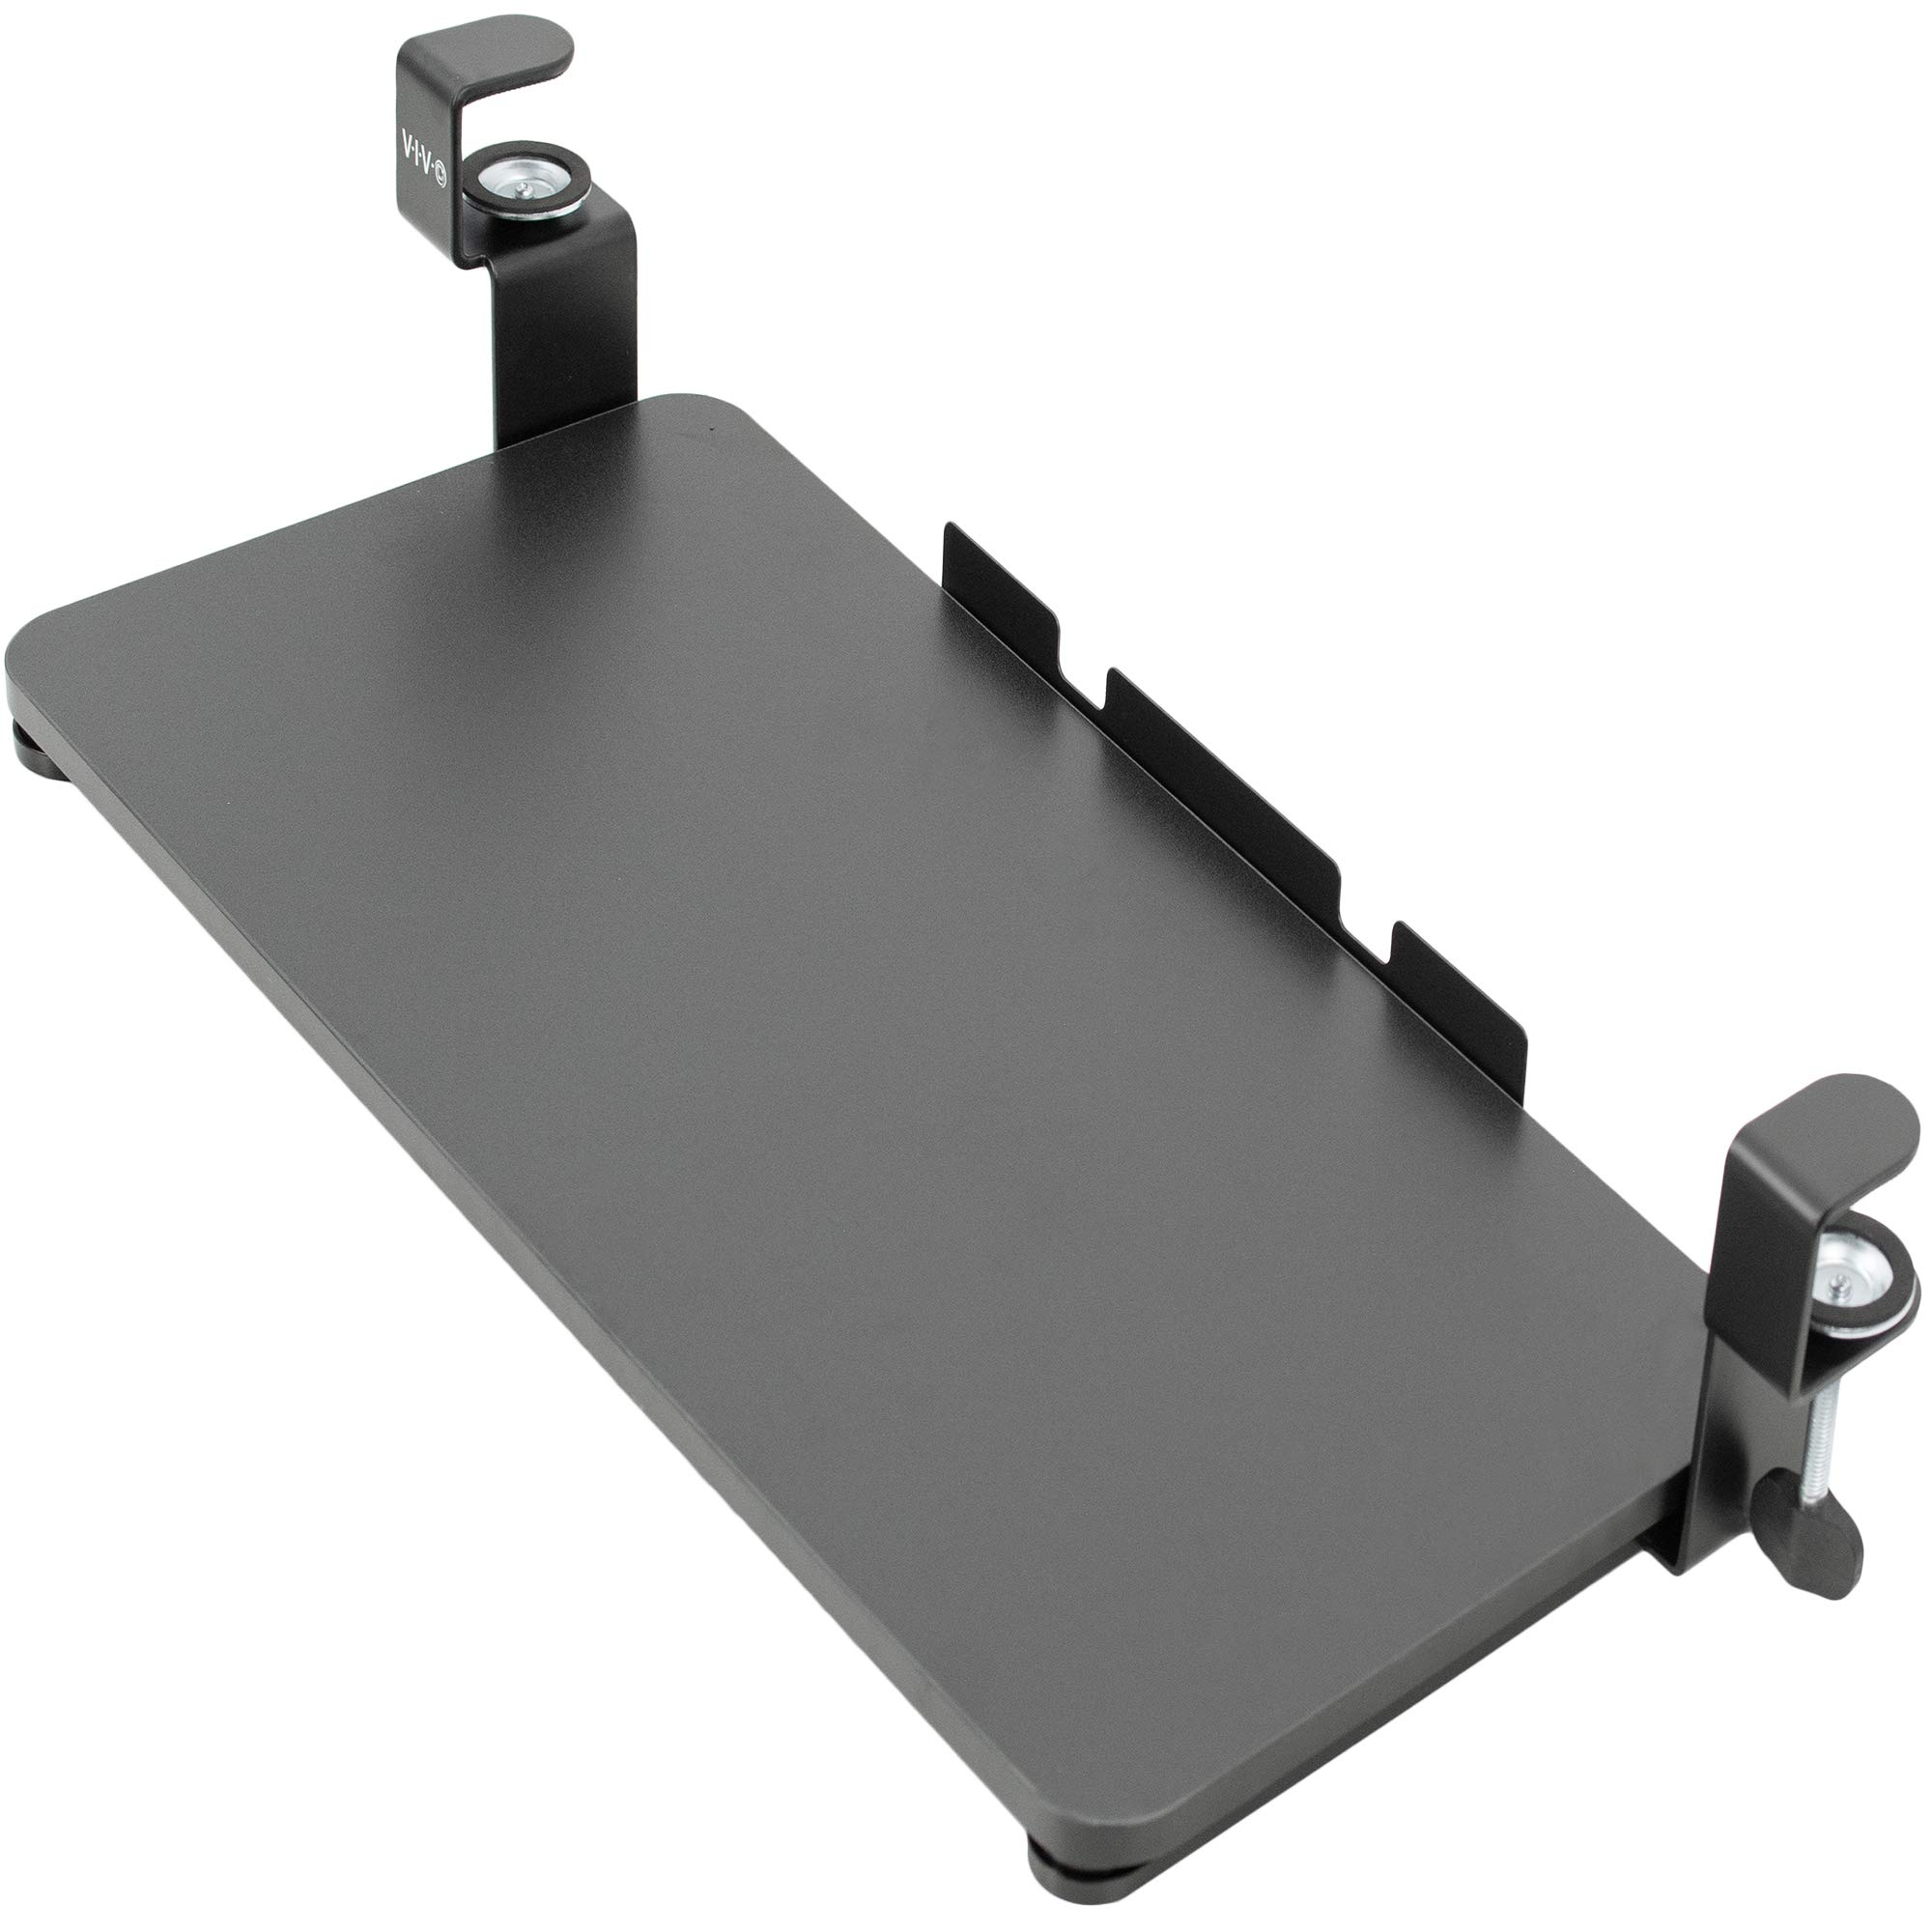 VIVO Clamp-on Computer Keyboard and Mouse Under Desk Slider Tray | 26 x 12 inch Pull Out Platform Drawer (MOUNT-KB05F) by VIVO